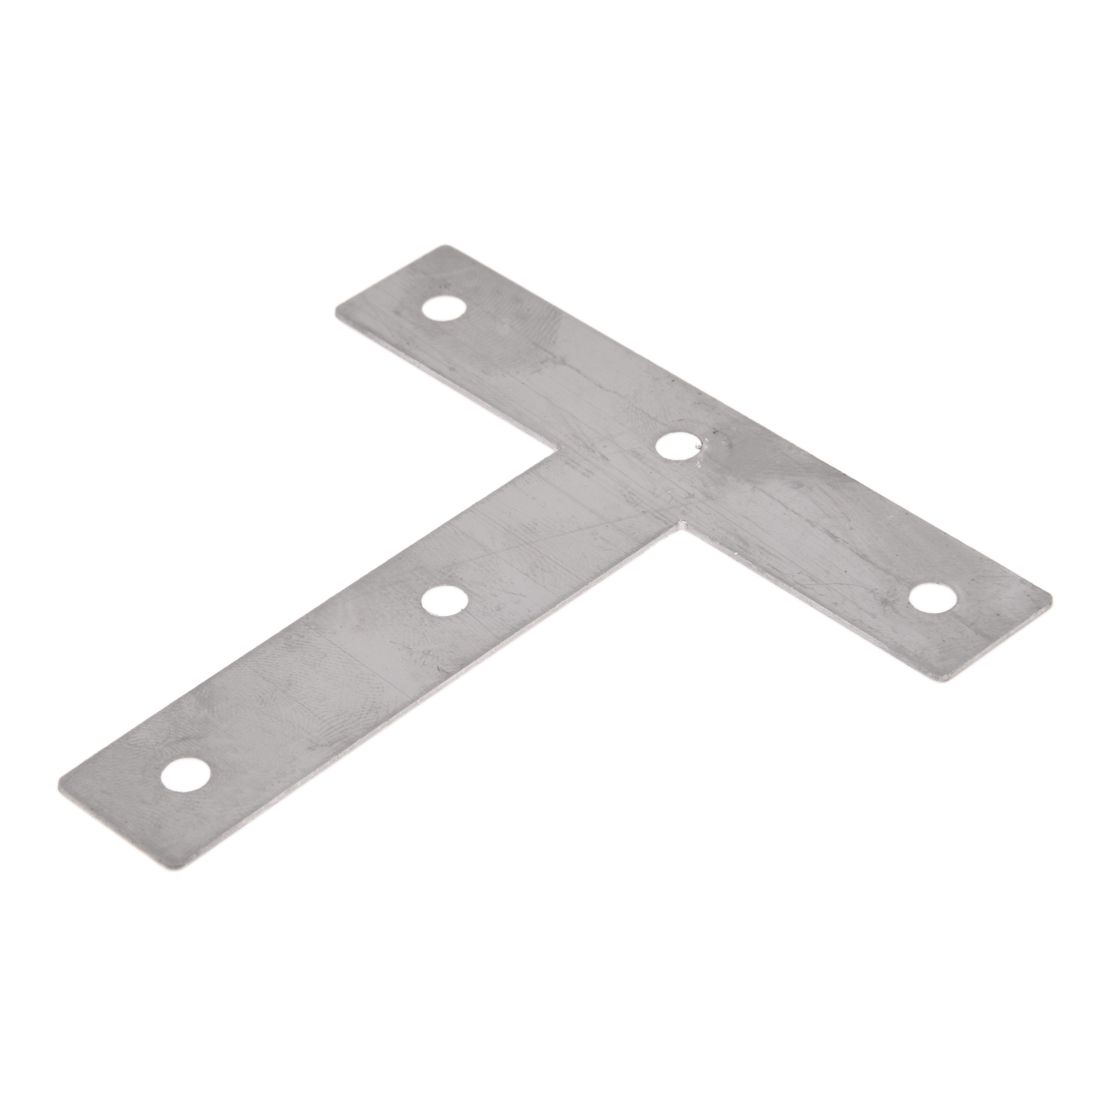 5 Pcs Angle Plate Corner Brace Flat T Shape Repair Bracket 80mm x 80mm